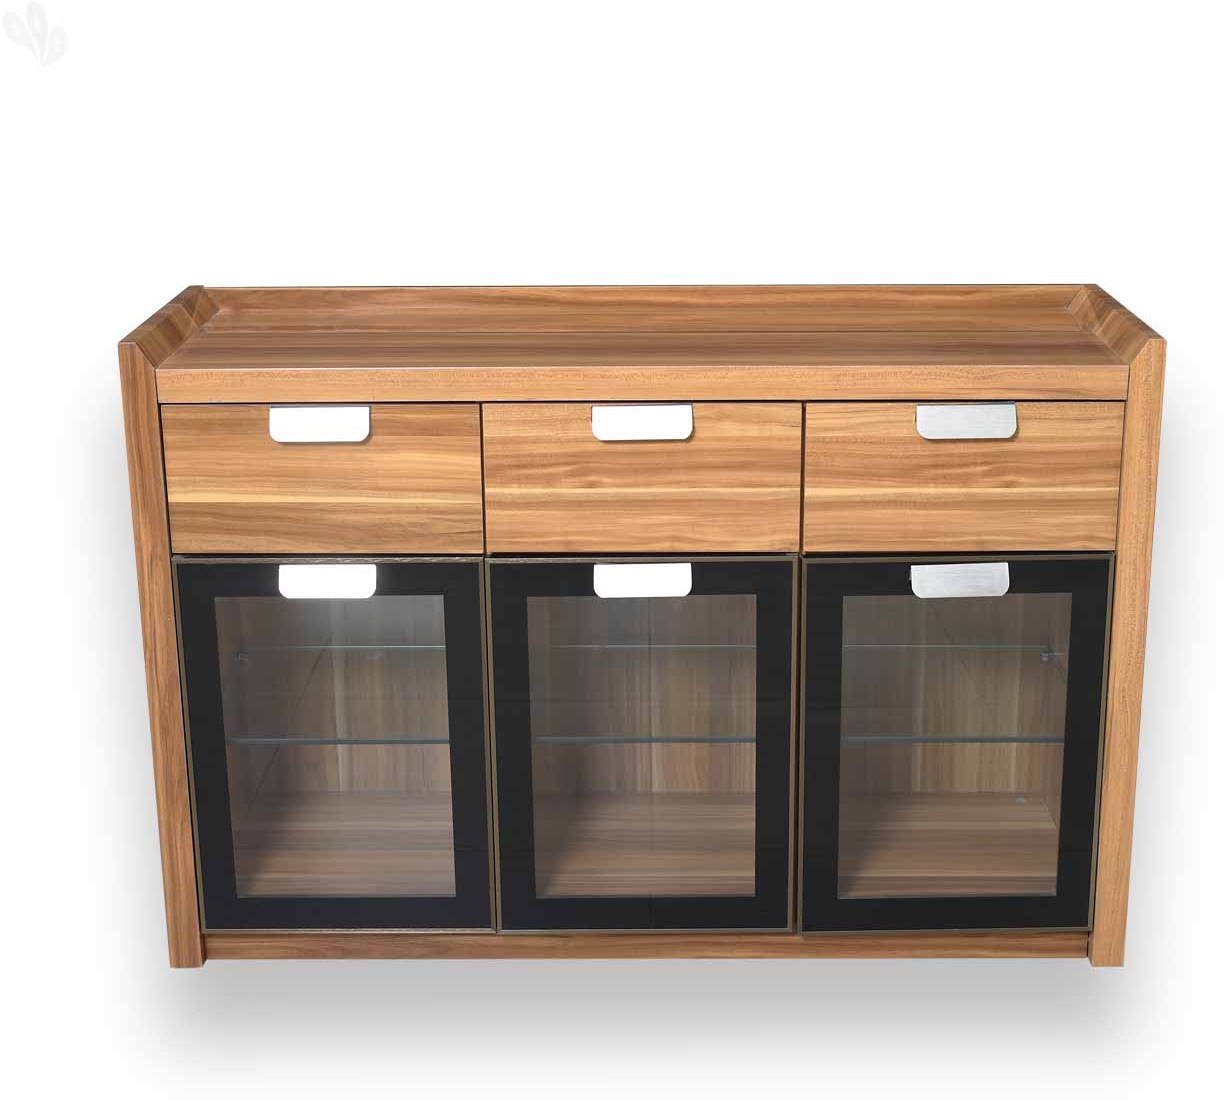 View Royal Oak Daffodil Engineered Wood Crockery Cabinet(Finish Color - Natural Brown) Furniture (Royal Oak)